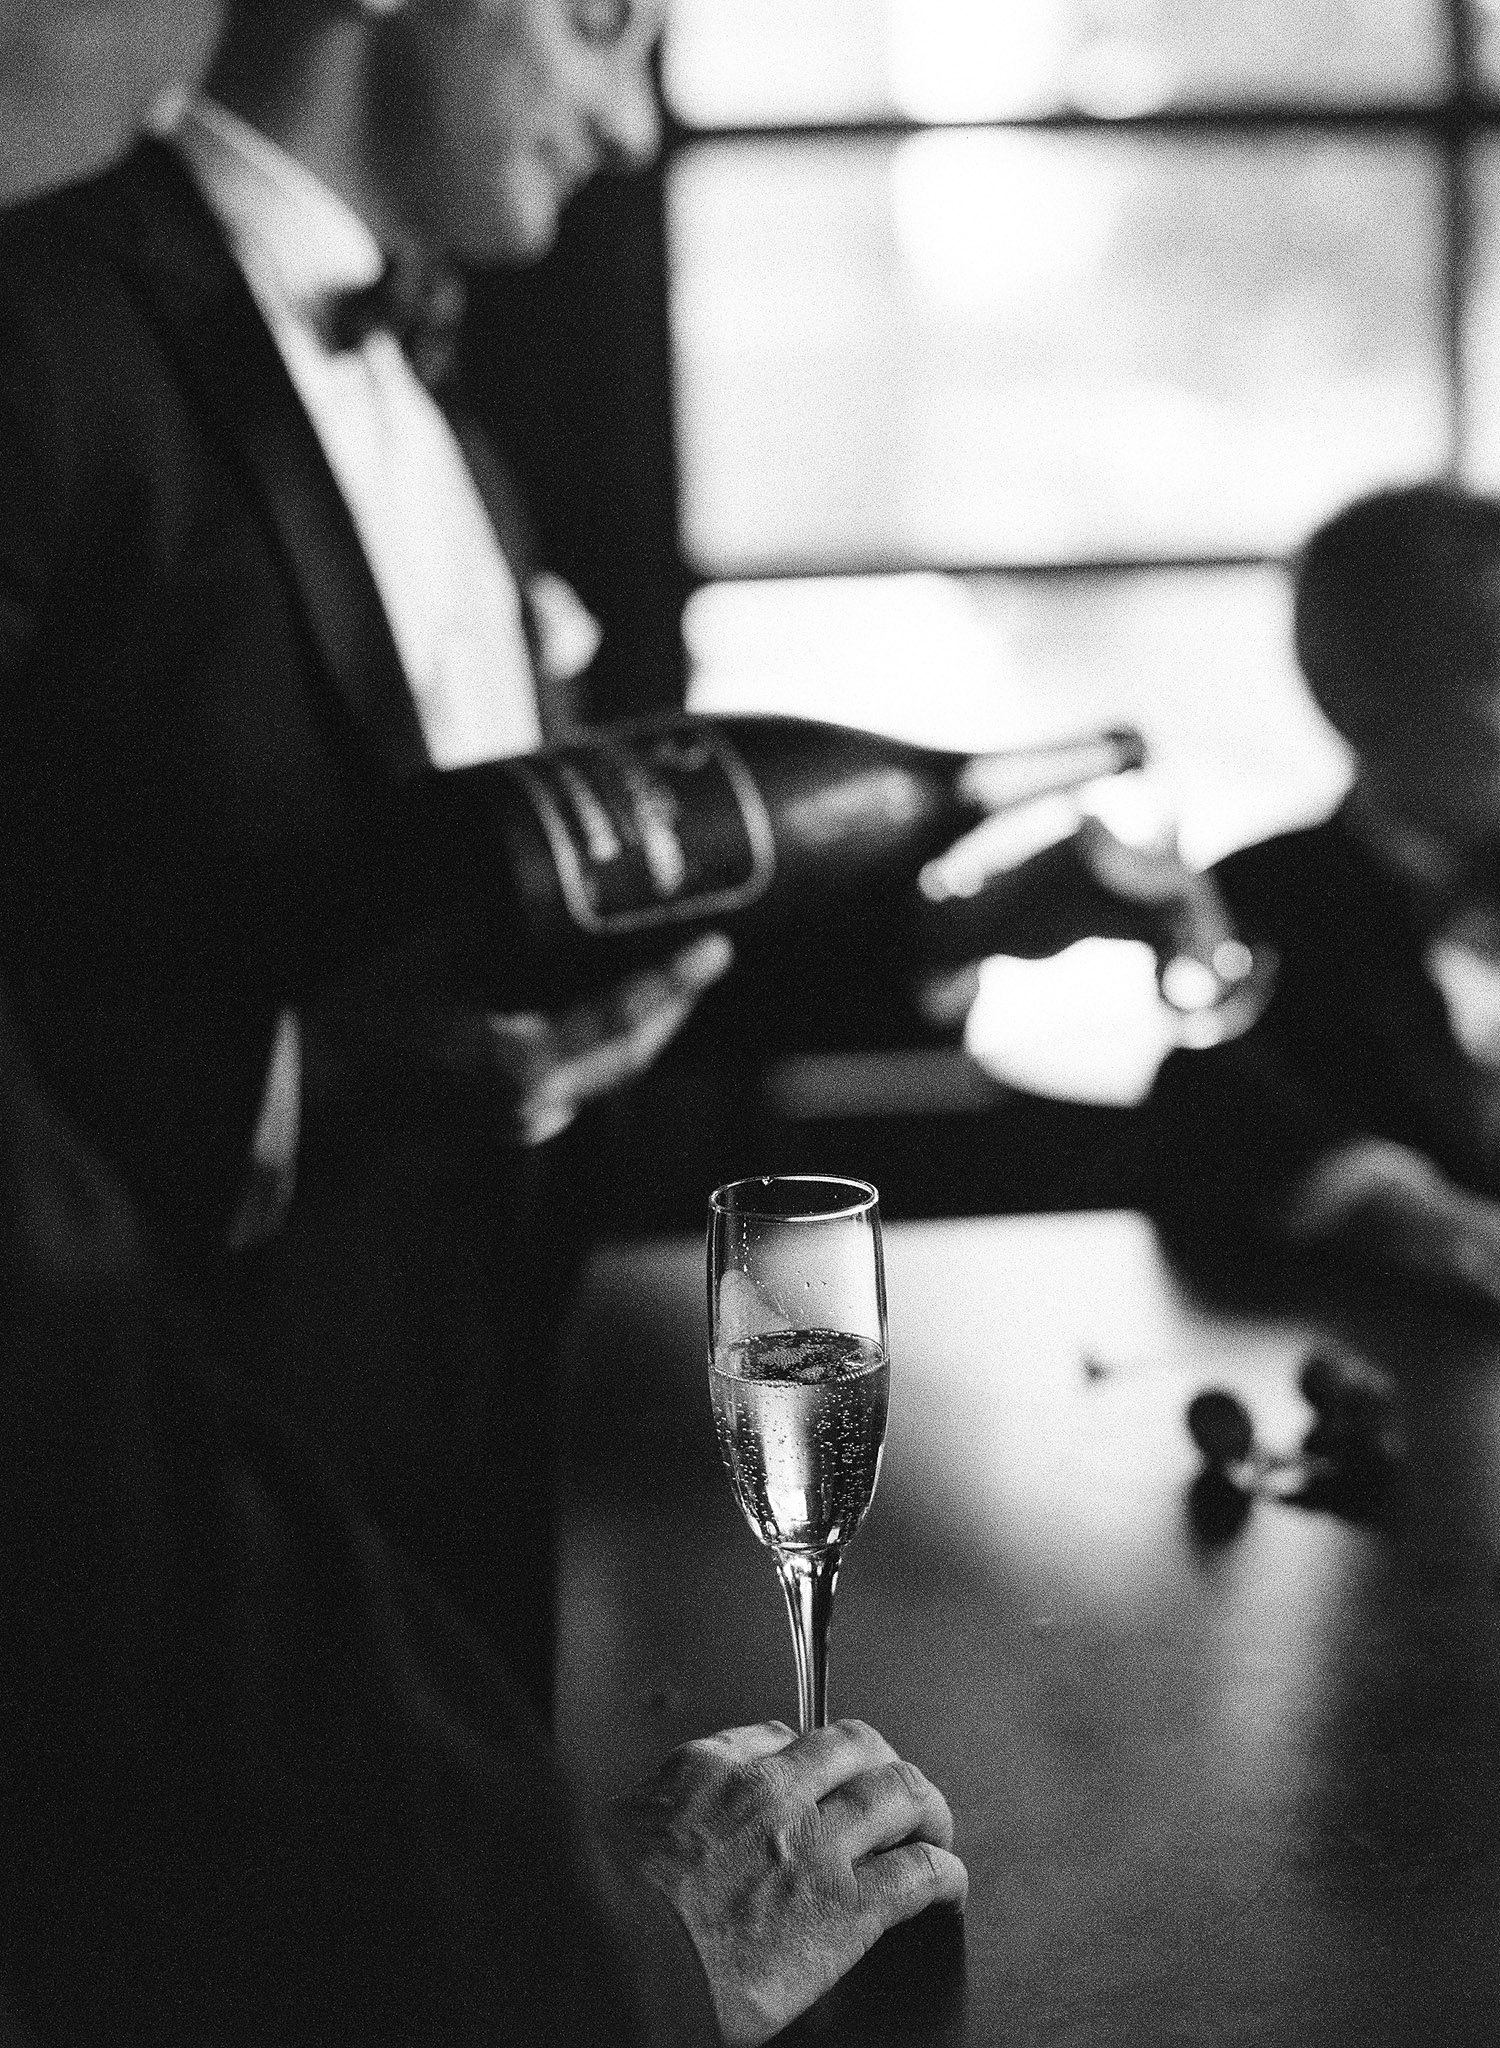 destination wedding photographer Lexia Frank photographs this Italian wedding entirely on film, at an italian villa estate called the Villa Terrace where the groom pours drinks for the groomsmen of champagne